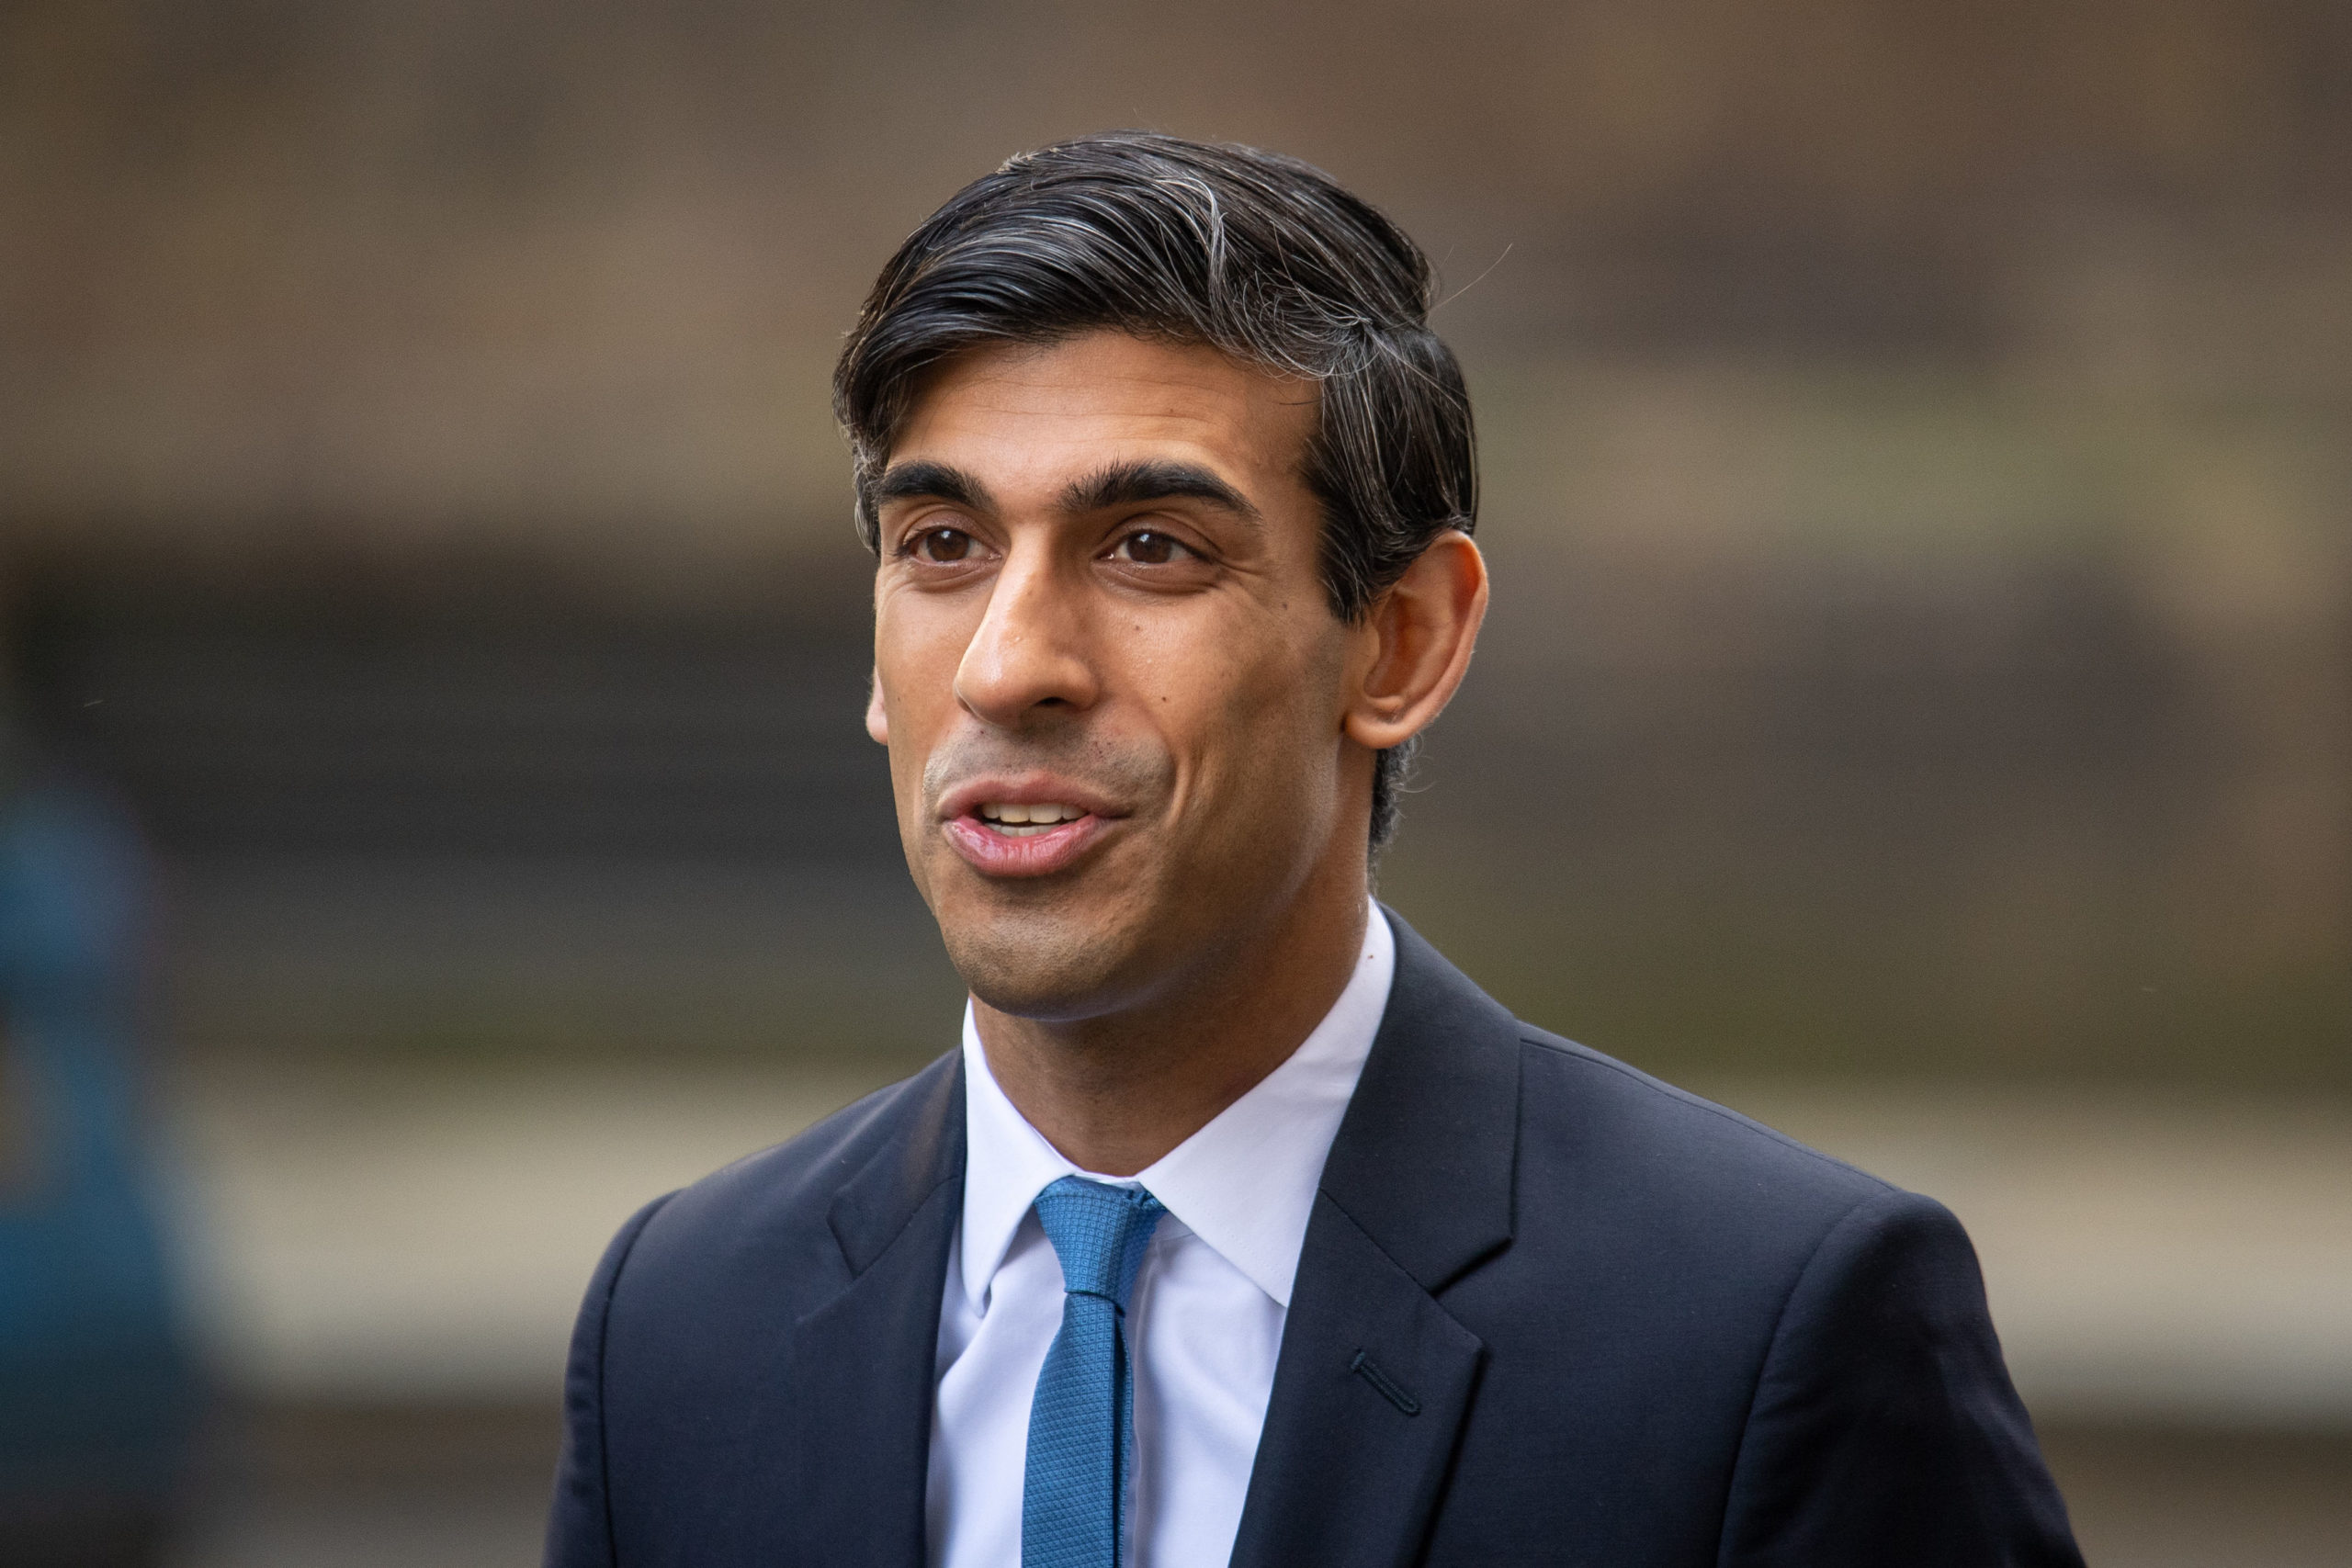 Rishi Sunak announced the extension of the furlough scheme on Tuesday.